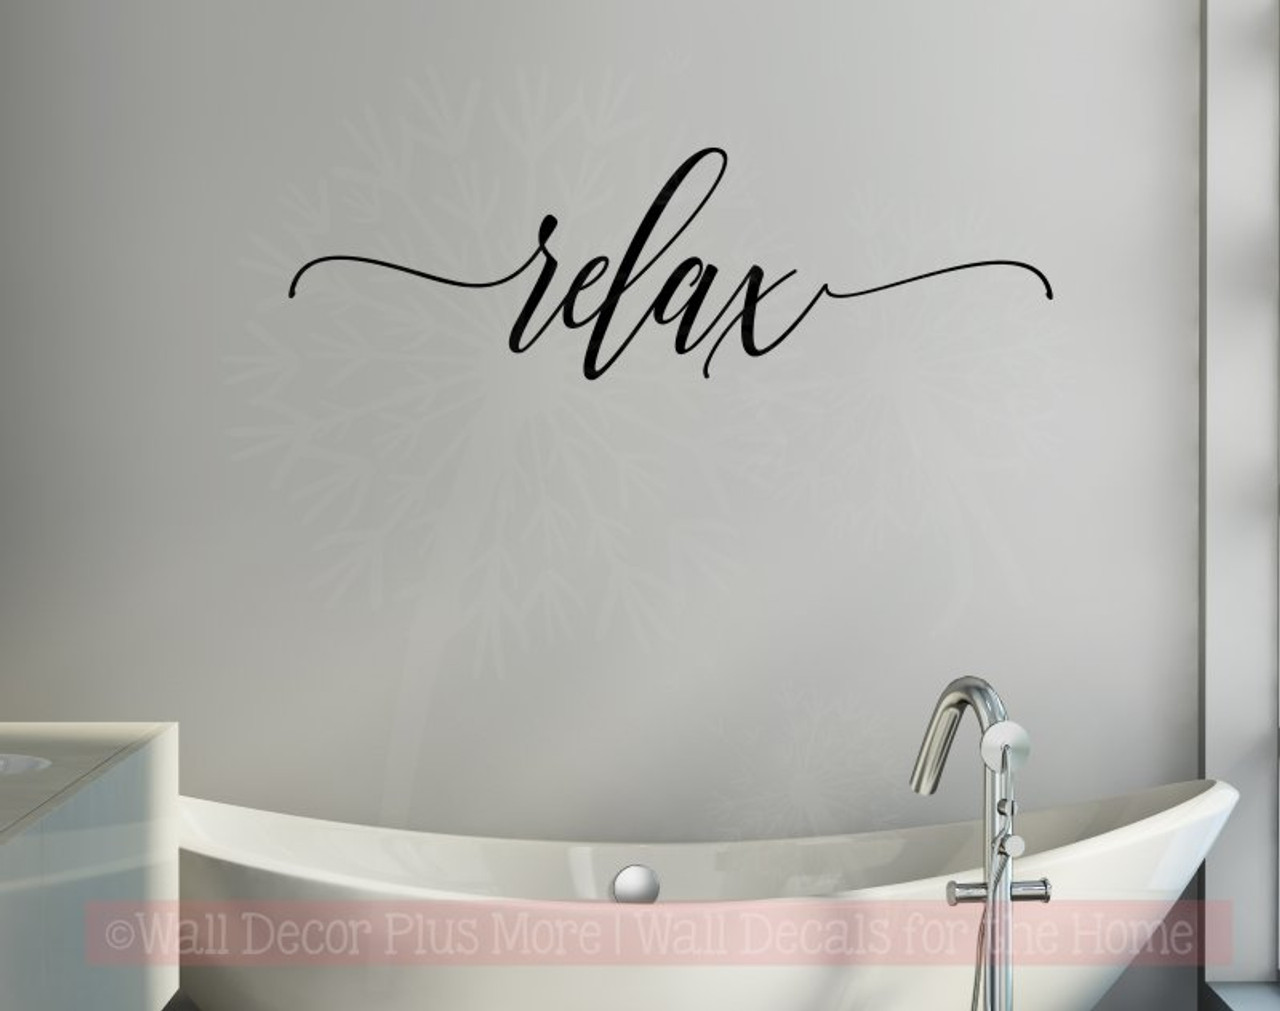 Relax Cursive Vinyl Lettering Bath Wall Decor Bathroom Wall Decals Quotes  Black